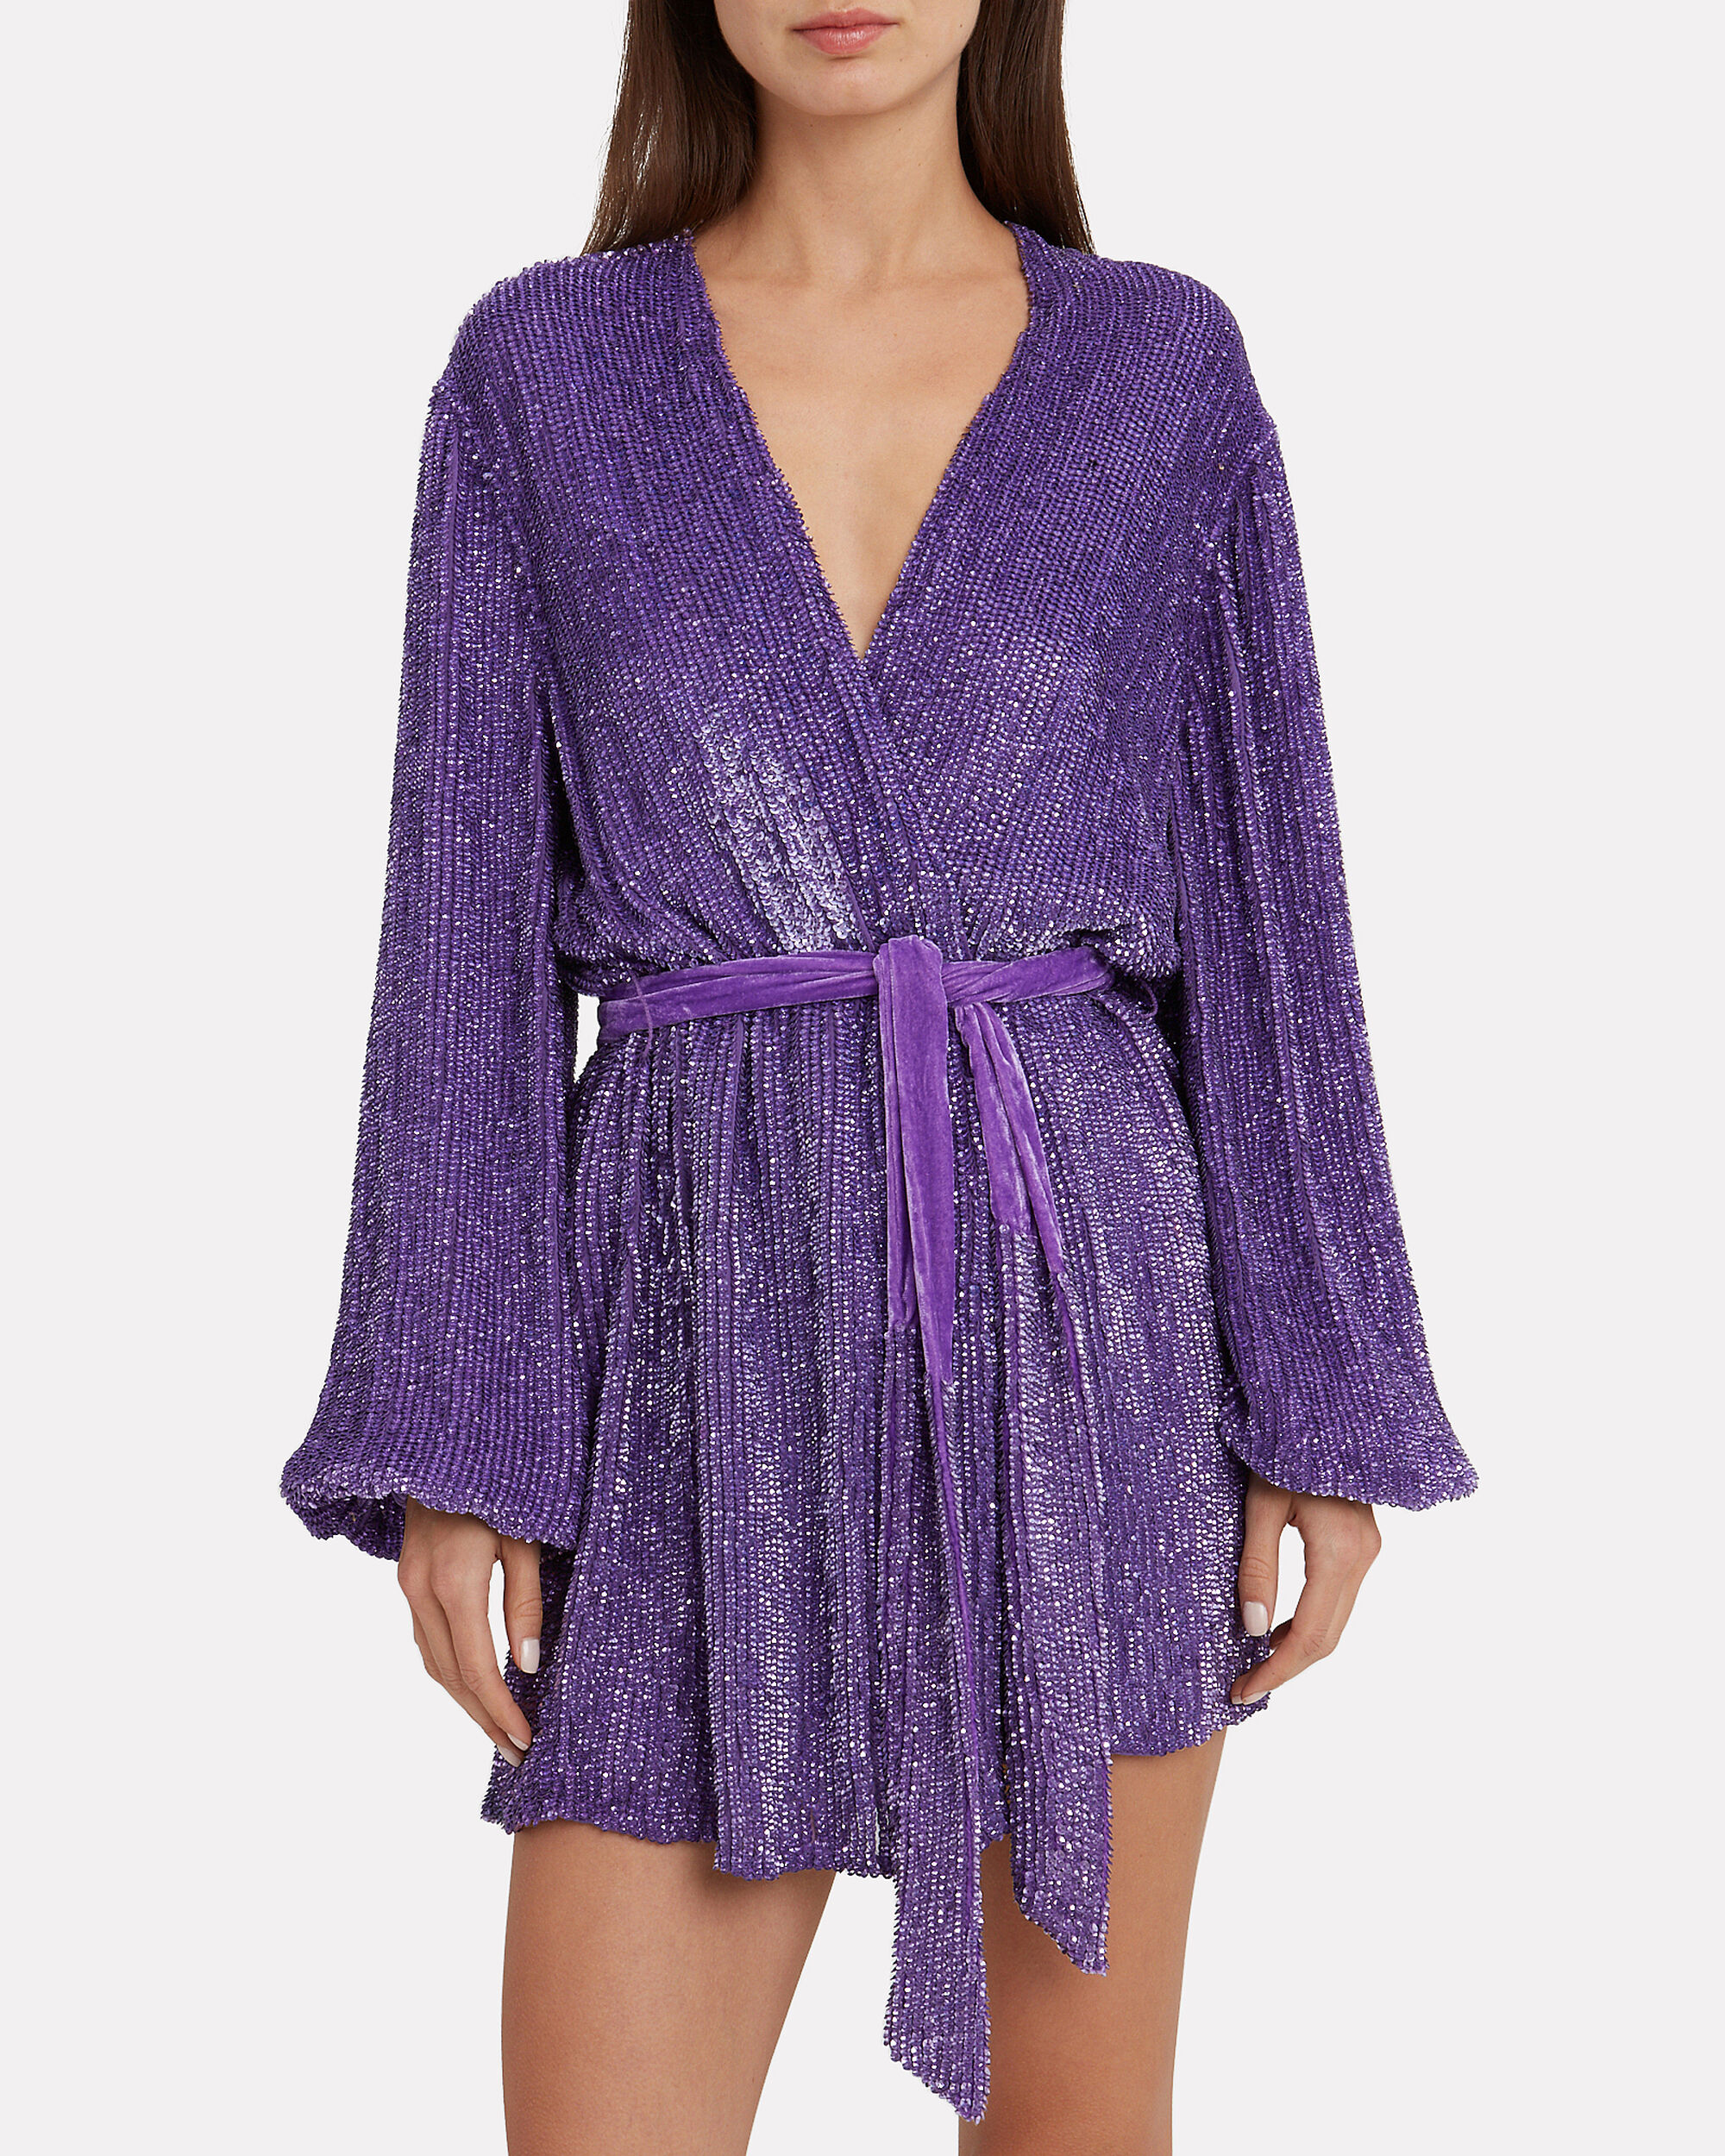 Gabrielle Purple Sequin Mini Dress, PURPLE, hi-res